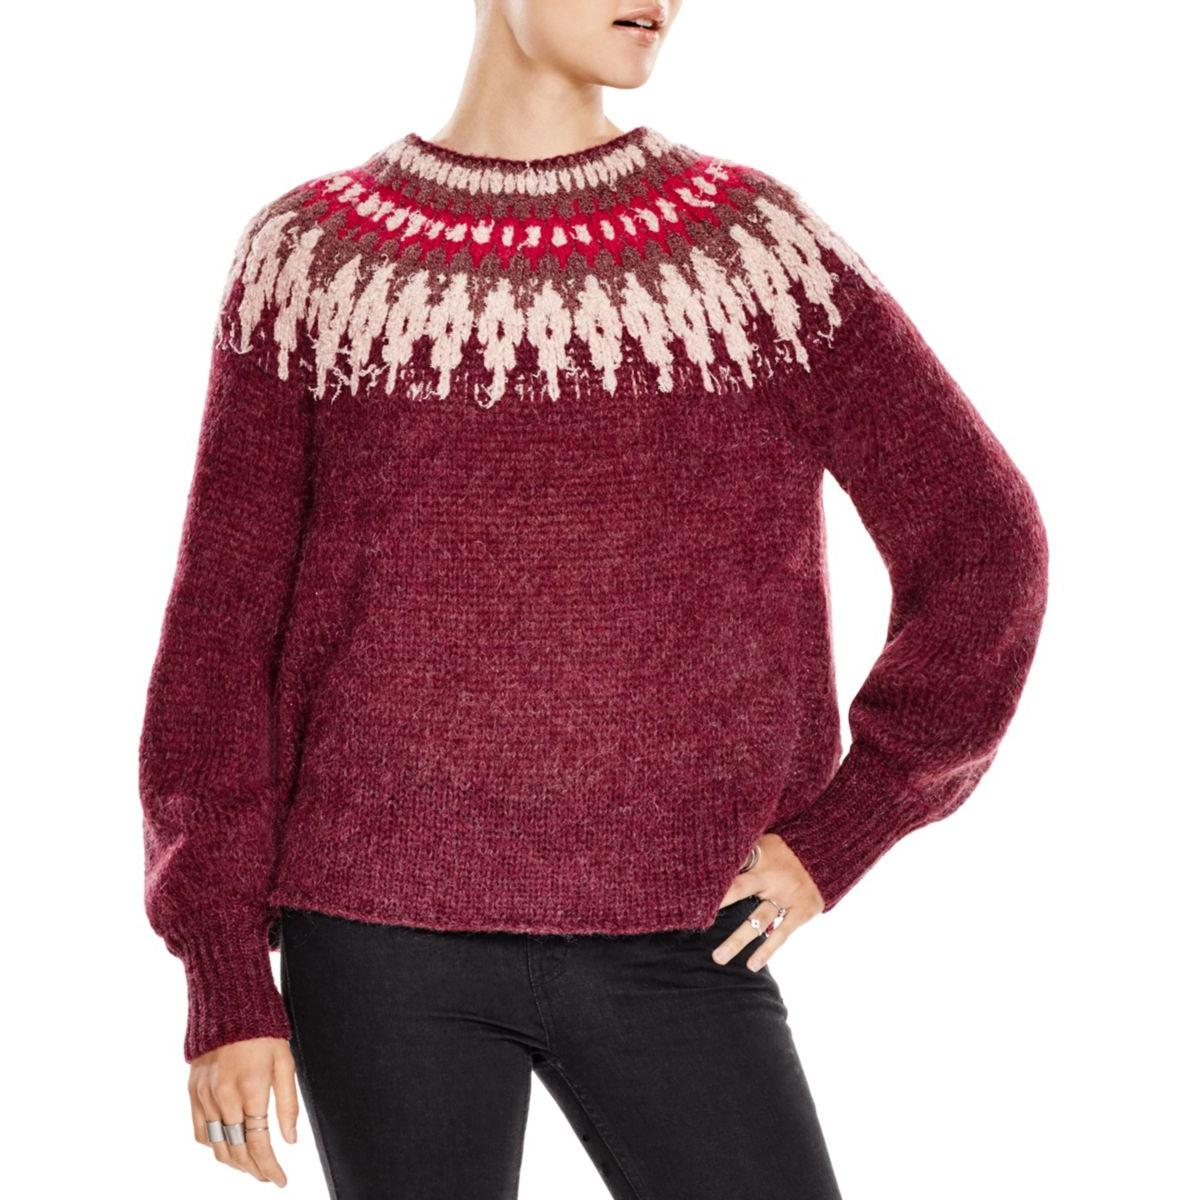 free people 4782 womens fair isle boatneck knit pullover sweater top bhfo ebay. Black Bedroom Furniture Sets. Home Design Ideas